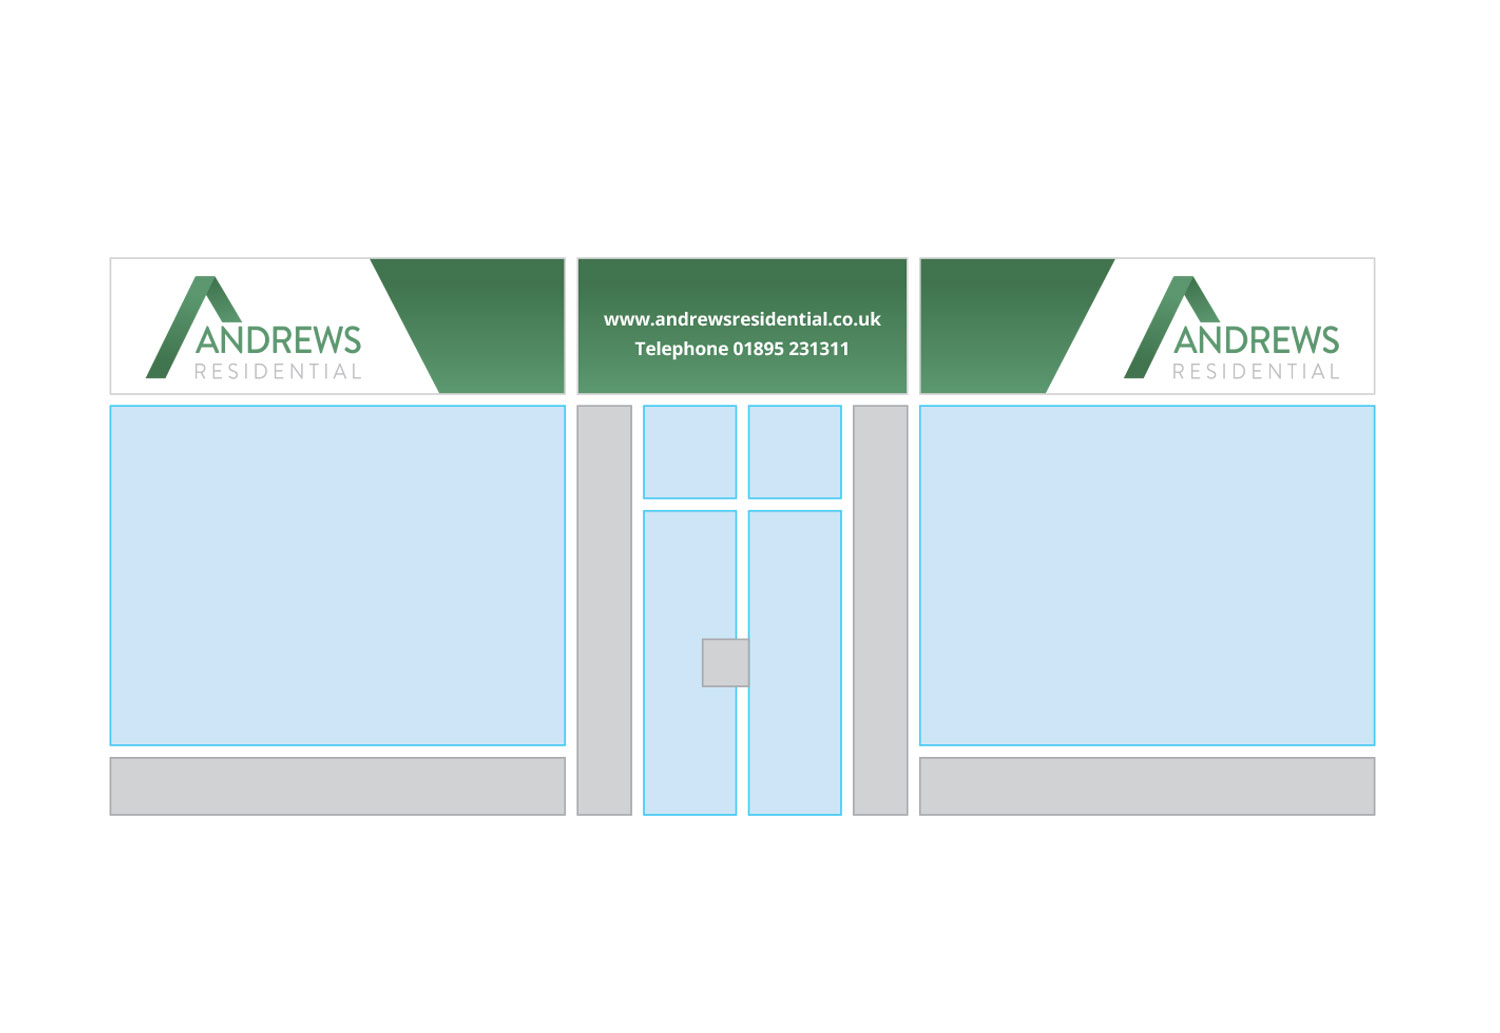 Andrews Residential office signage